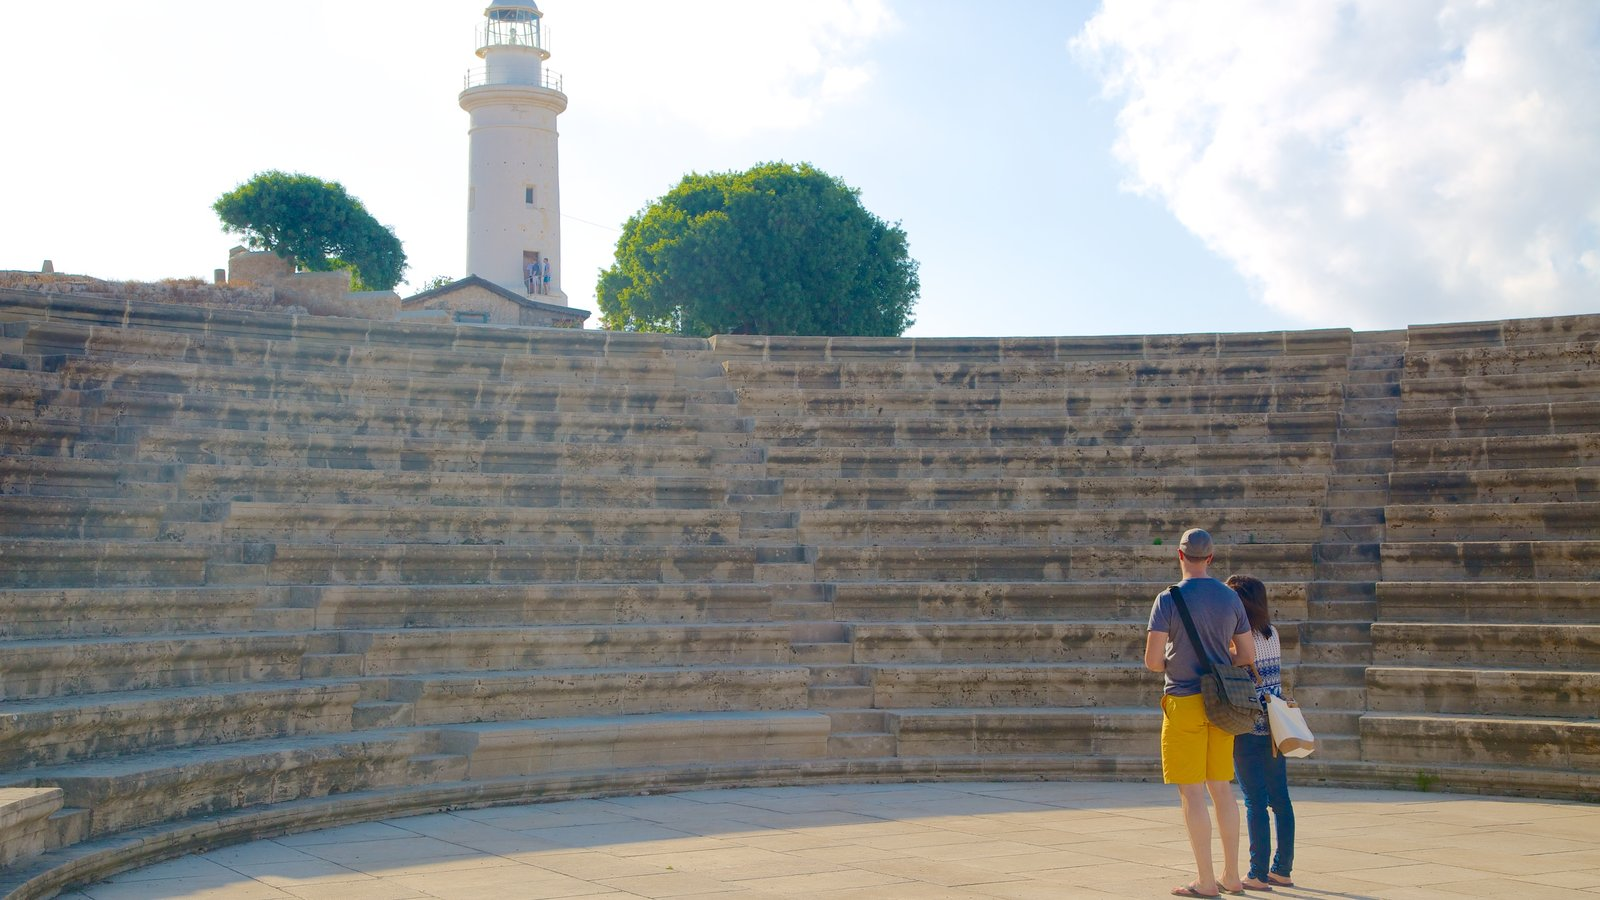 Paphos Archaeological Park which includes heritage architecture as well as a couple